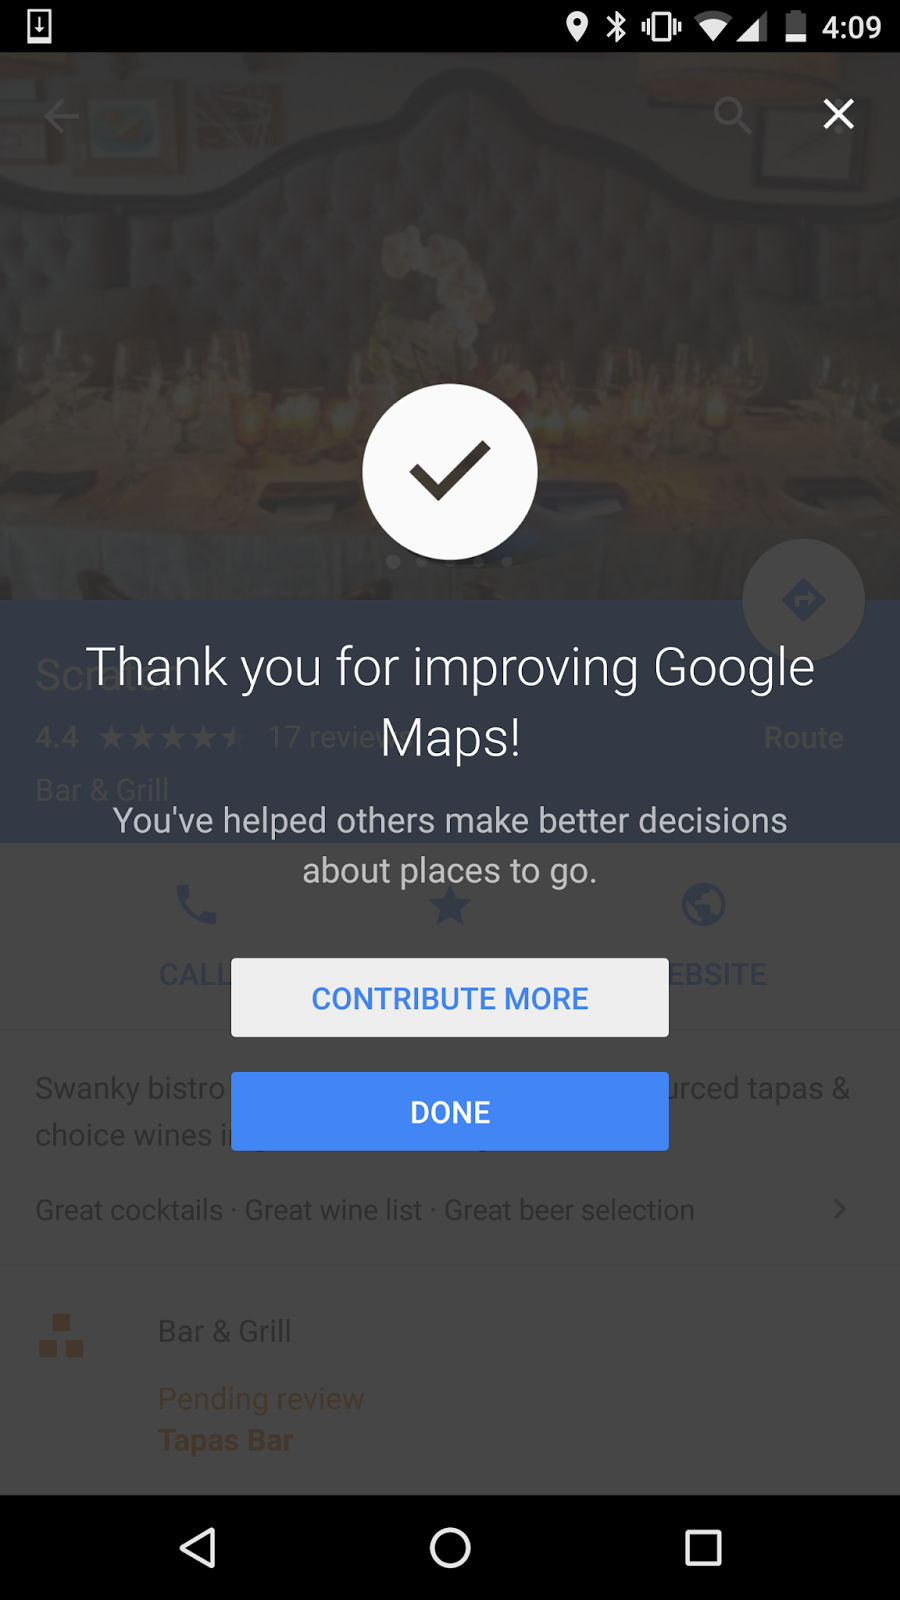 together these new changes let people who are familiar with their neighborhoods help provide accurate reliable information about their favorite haunts and